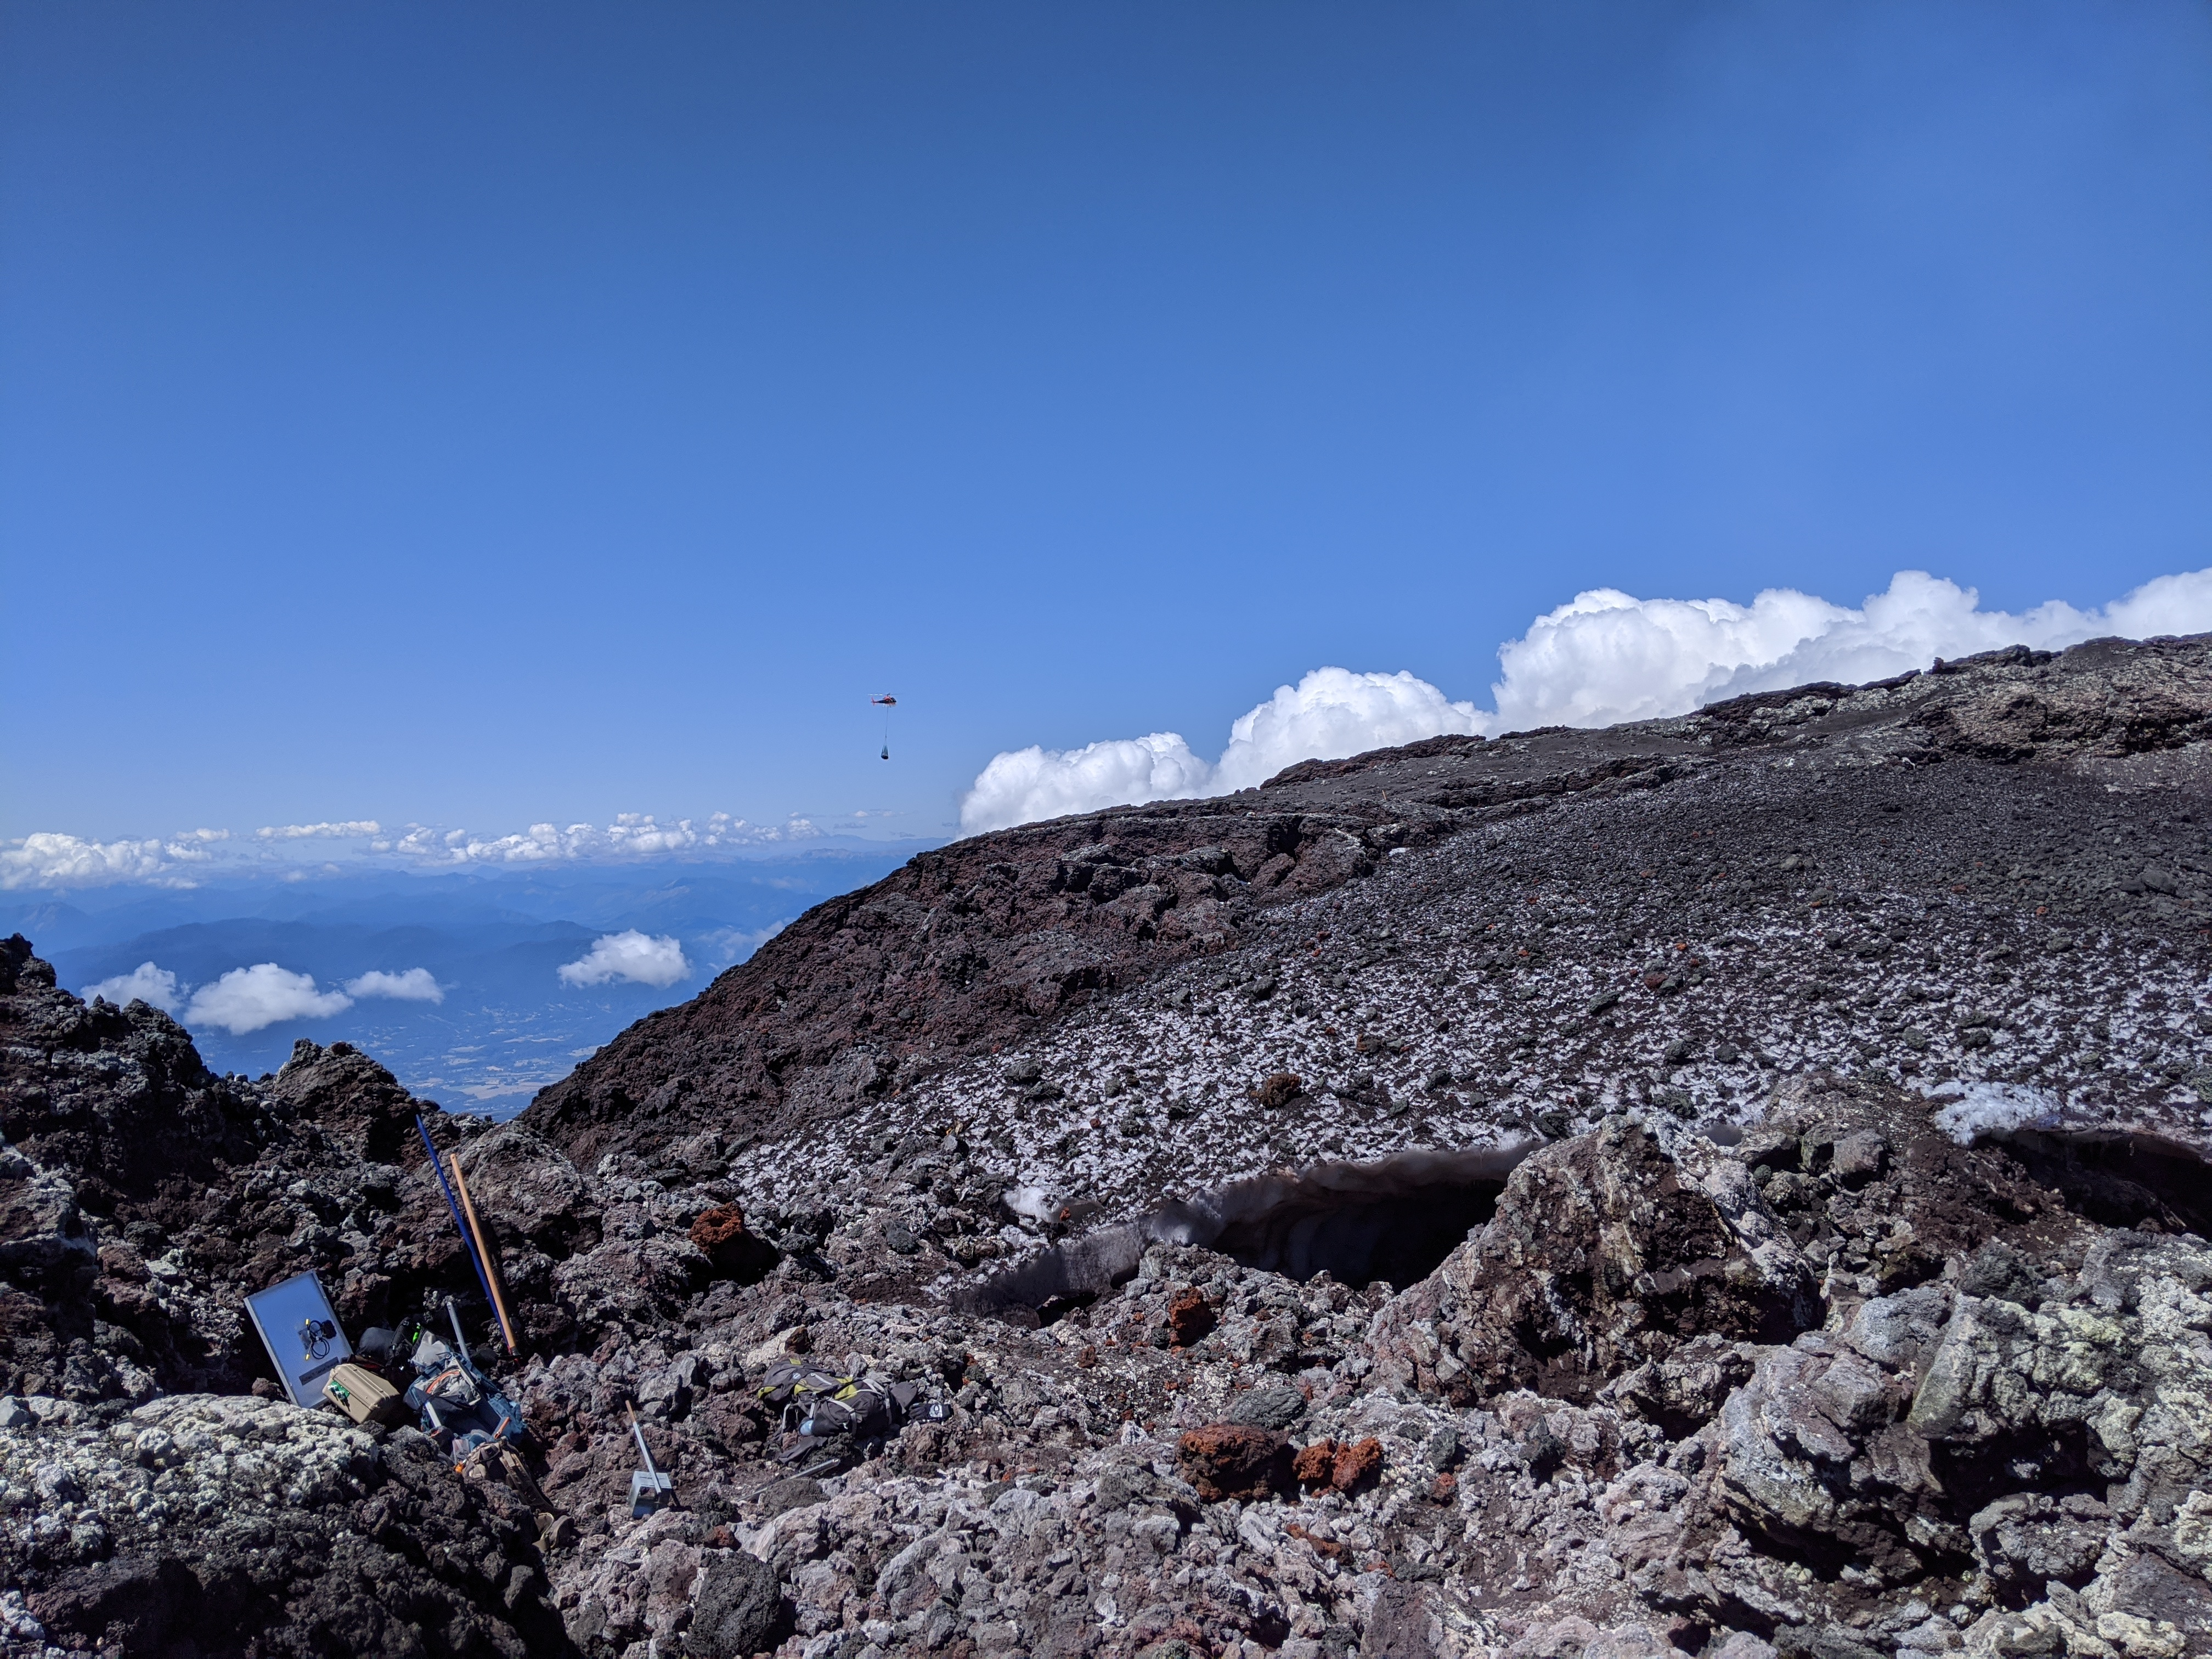 Natural Laboratory on Villarrica - Tools on Volcano with Helicopter in the Distance